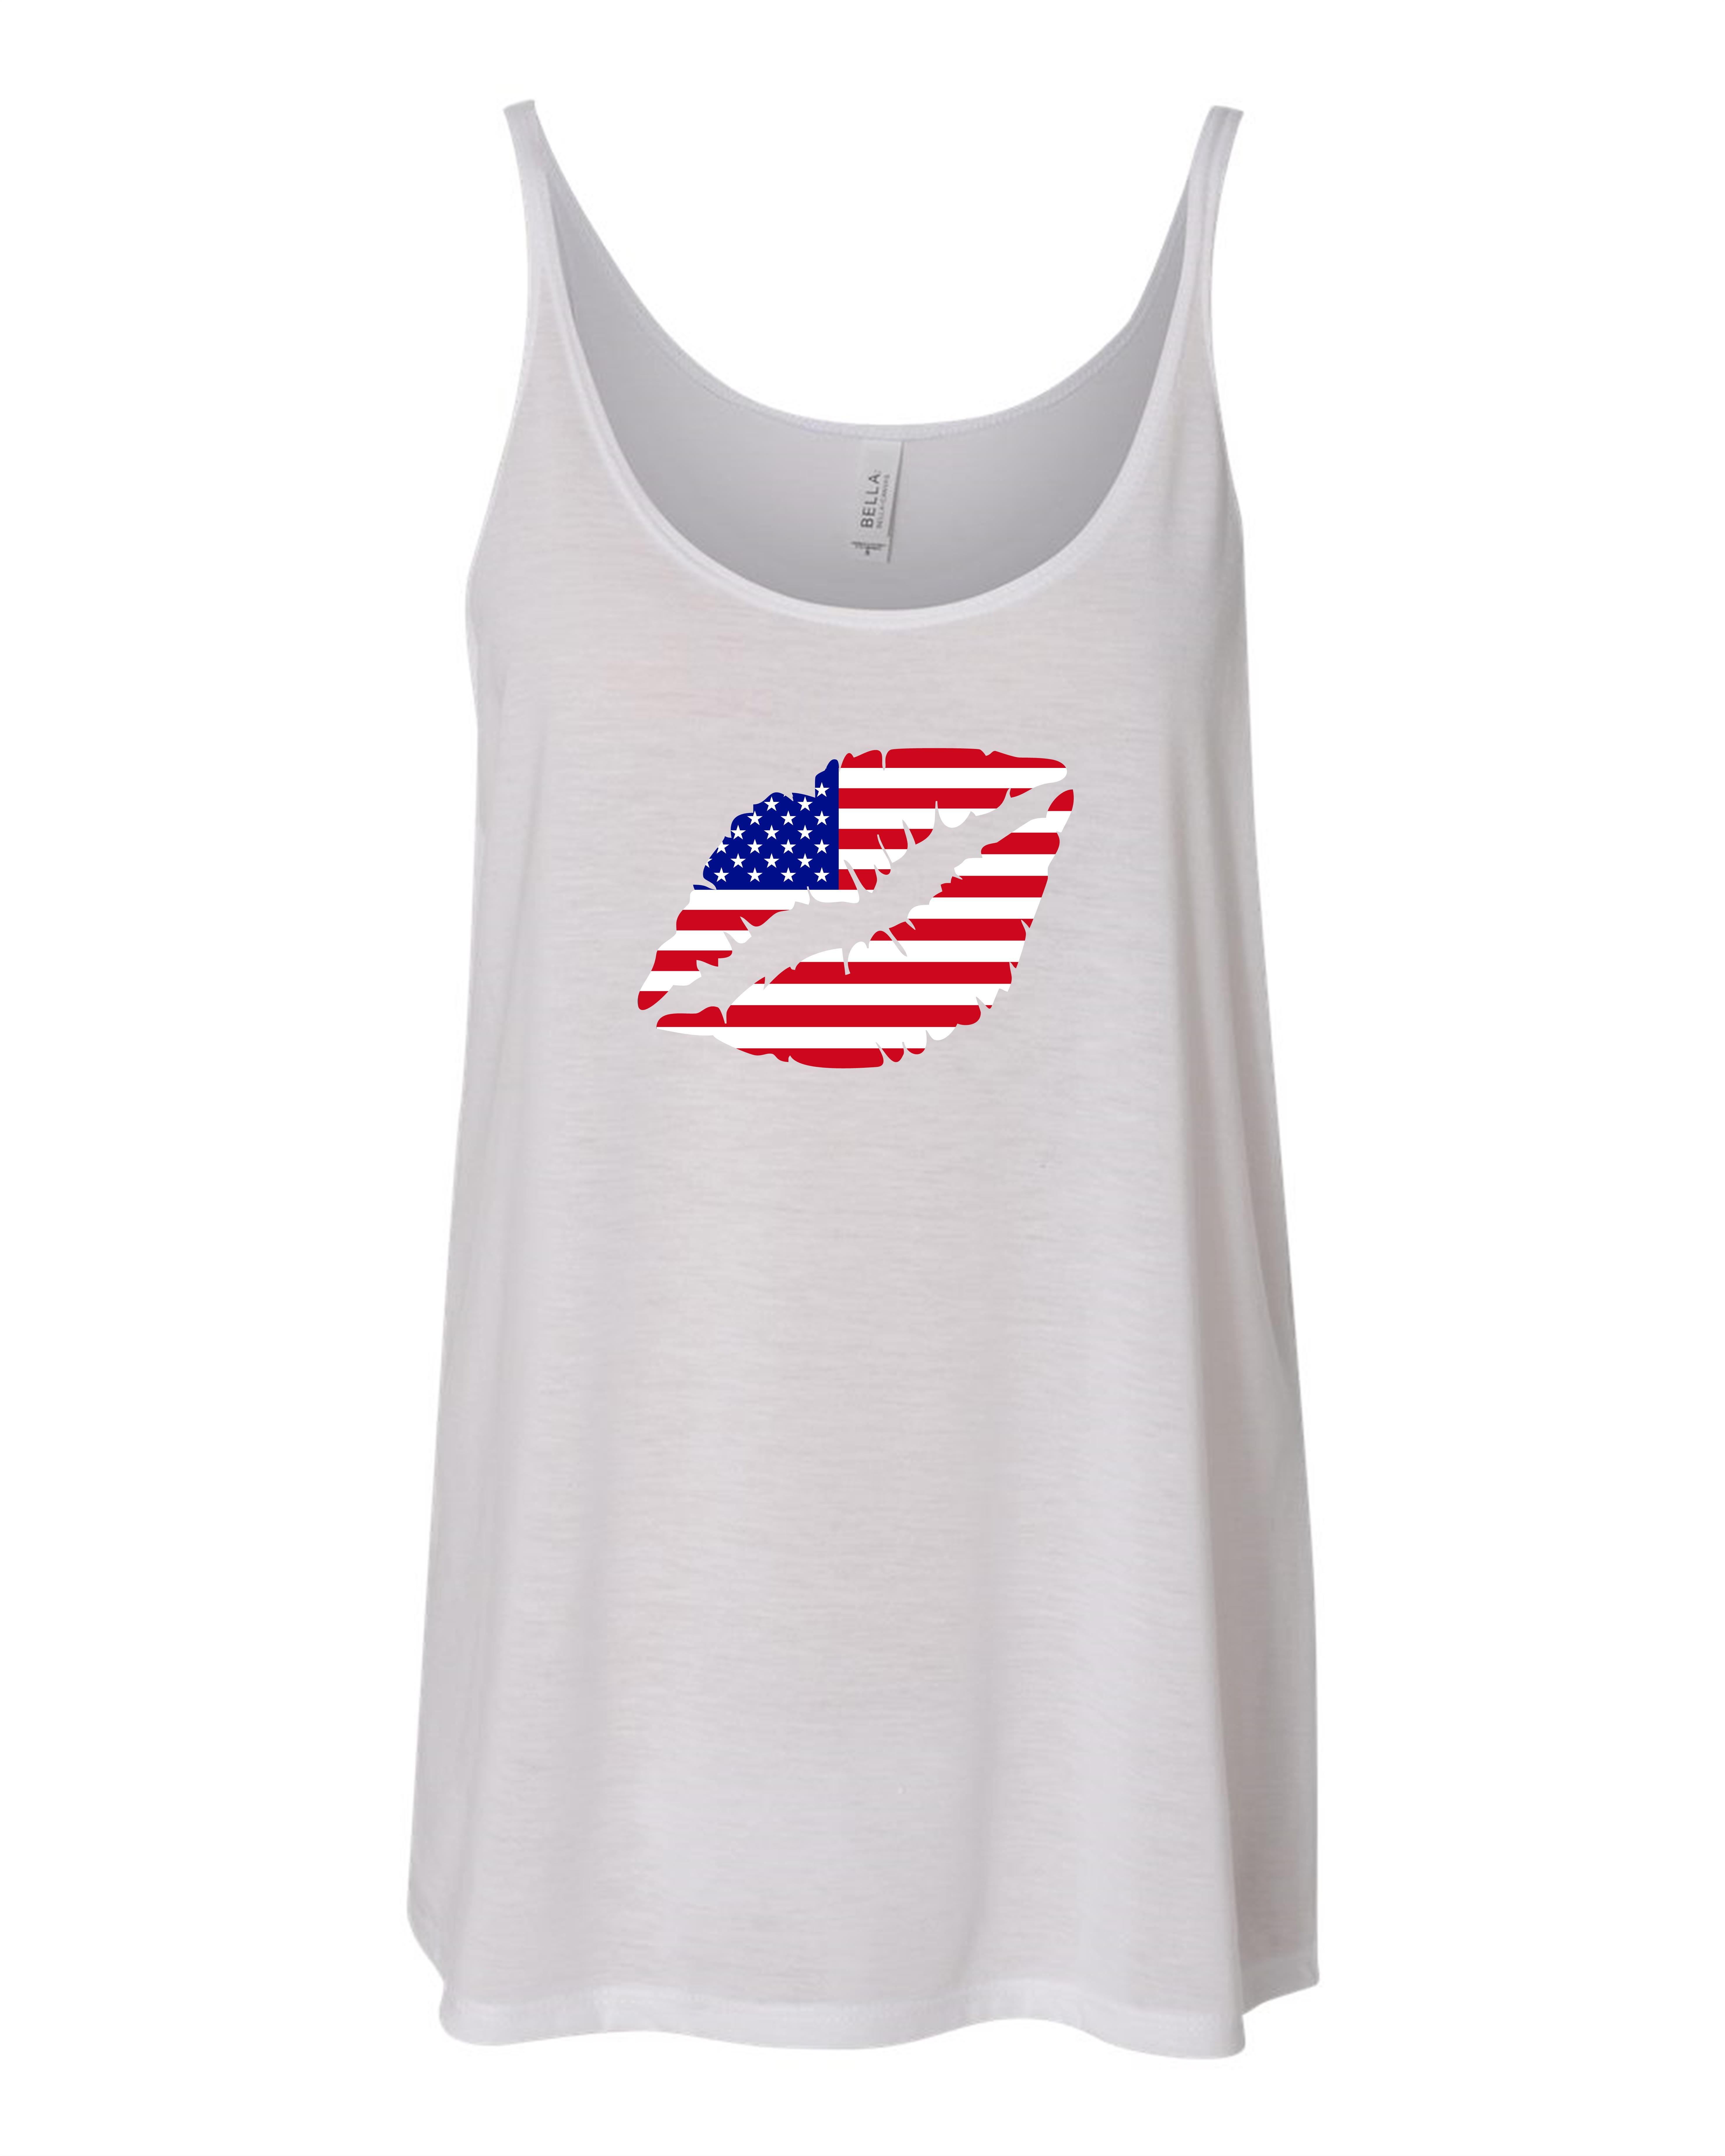 Womens Patriotic Clothing For The 4th Of July Womens